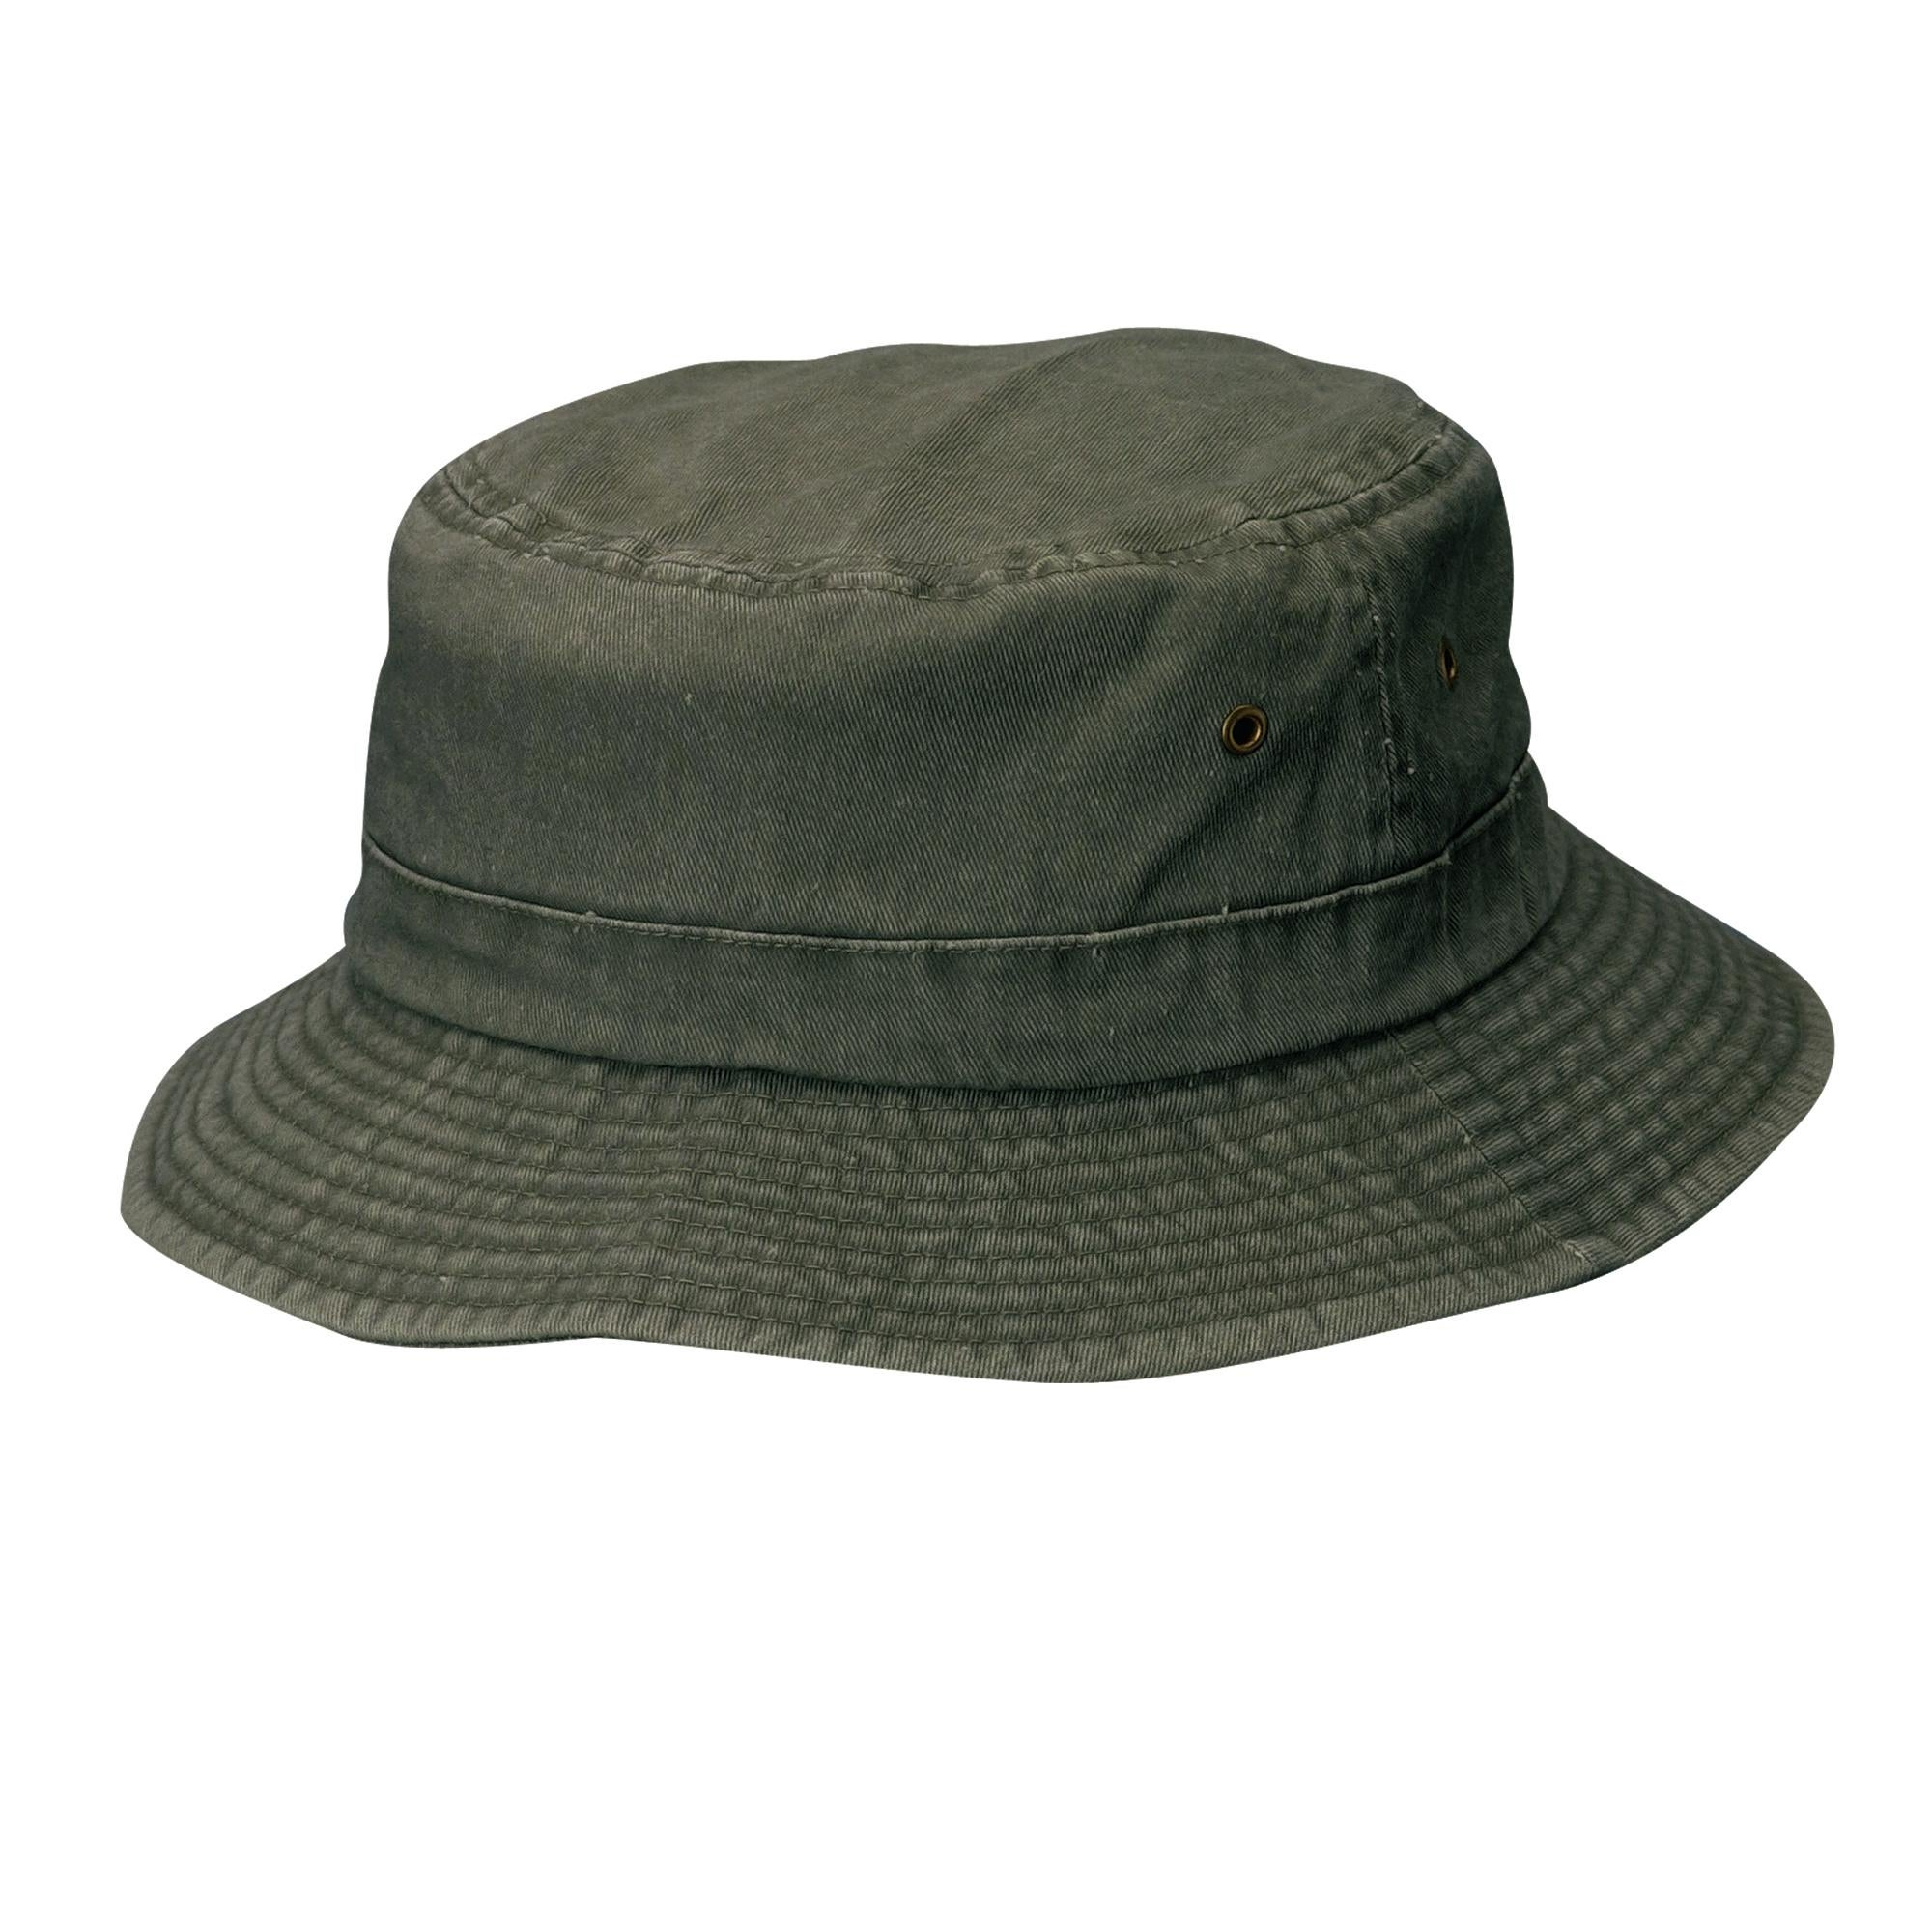 cd81bb8f Shop Dorfman Pacific Cotton Big and Tall Summer Bucket Hat 2XL 3XL - Ships  To Canada - Overstock - 14278362